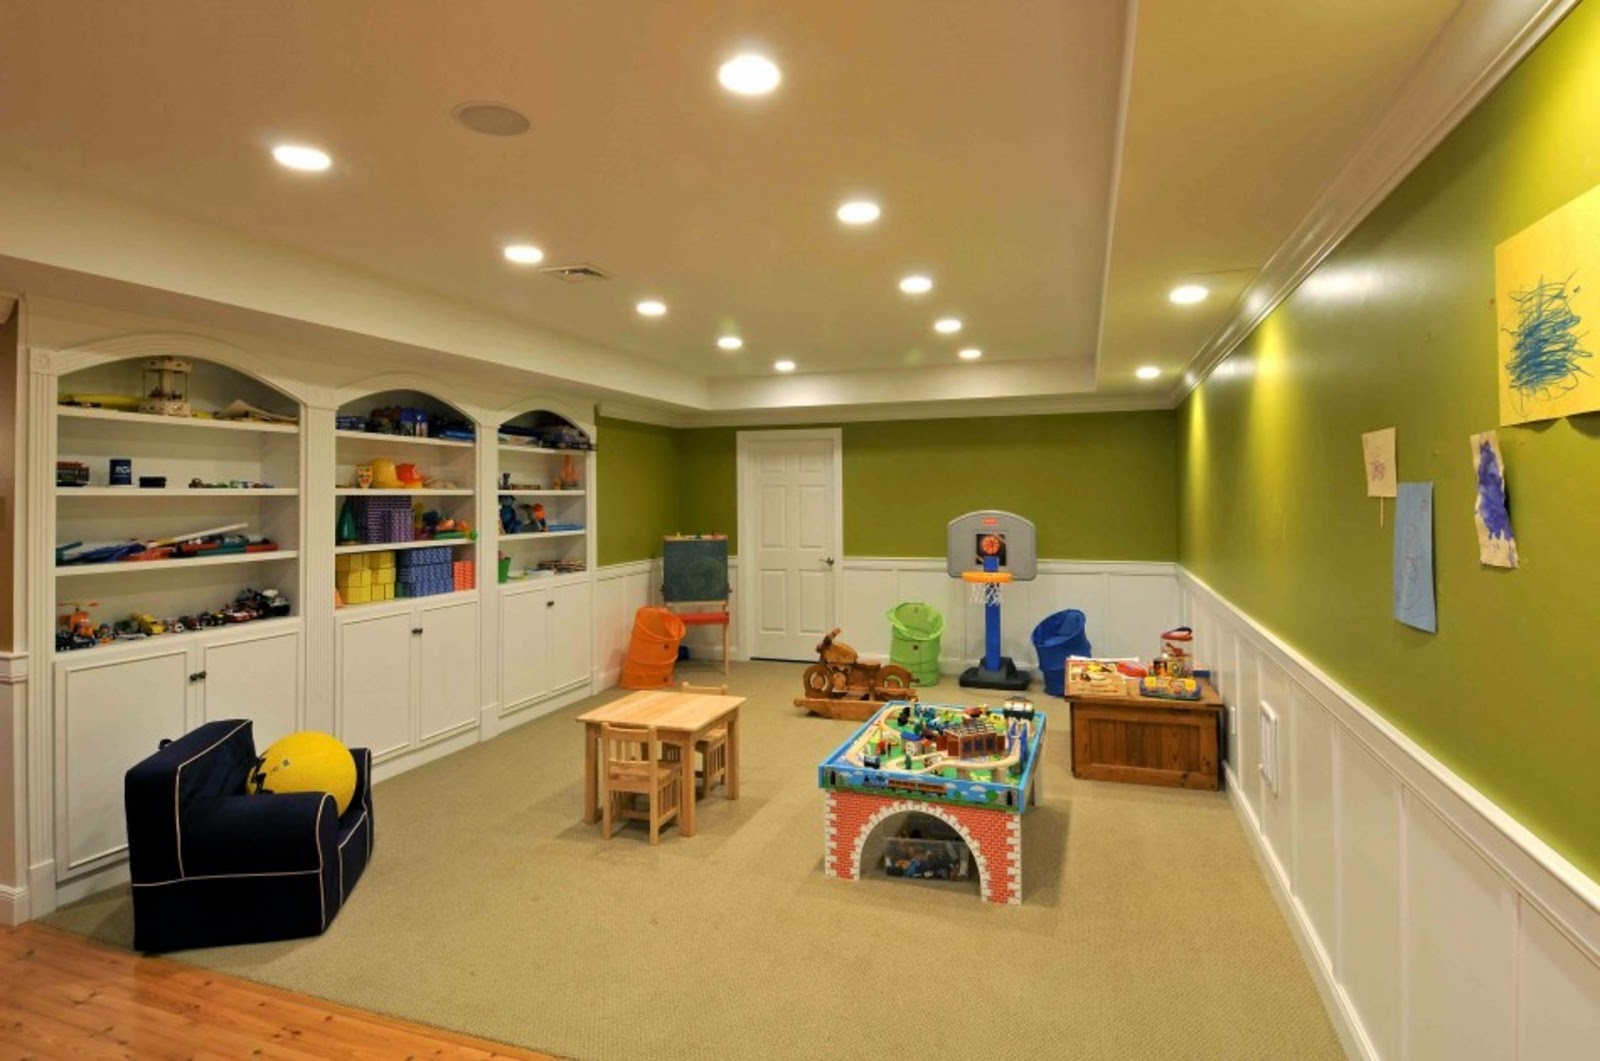 16 creative basement ceiling ideas for your basement instant knowledge - Basement design ideas photos ...